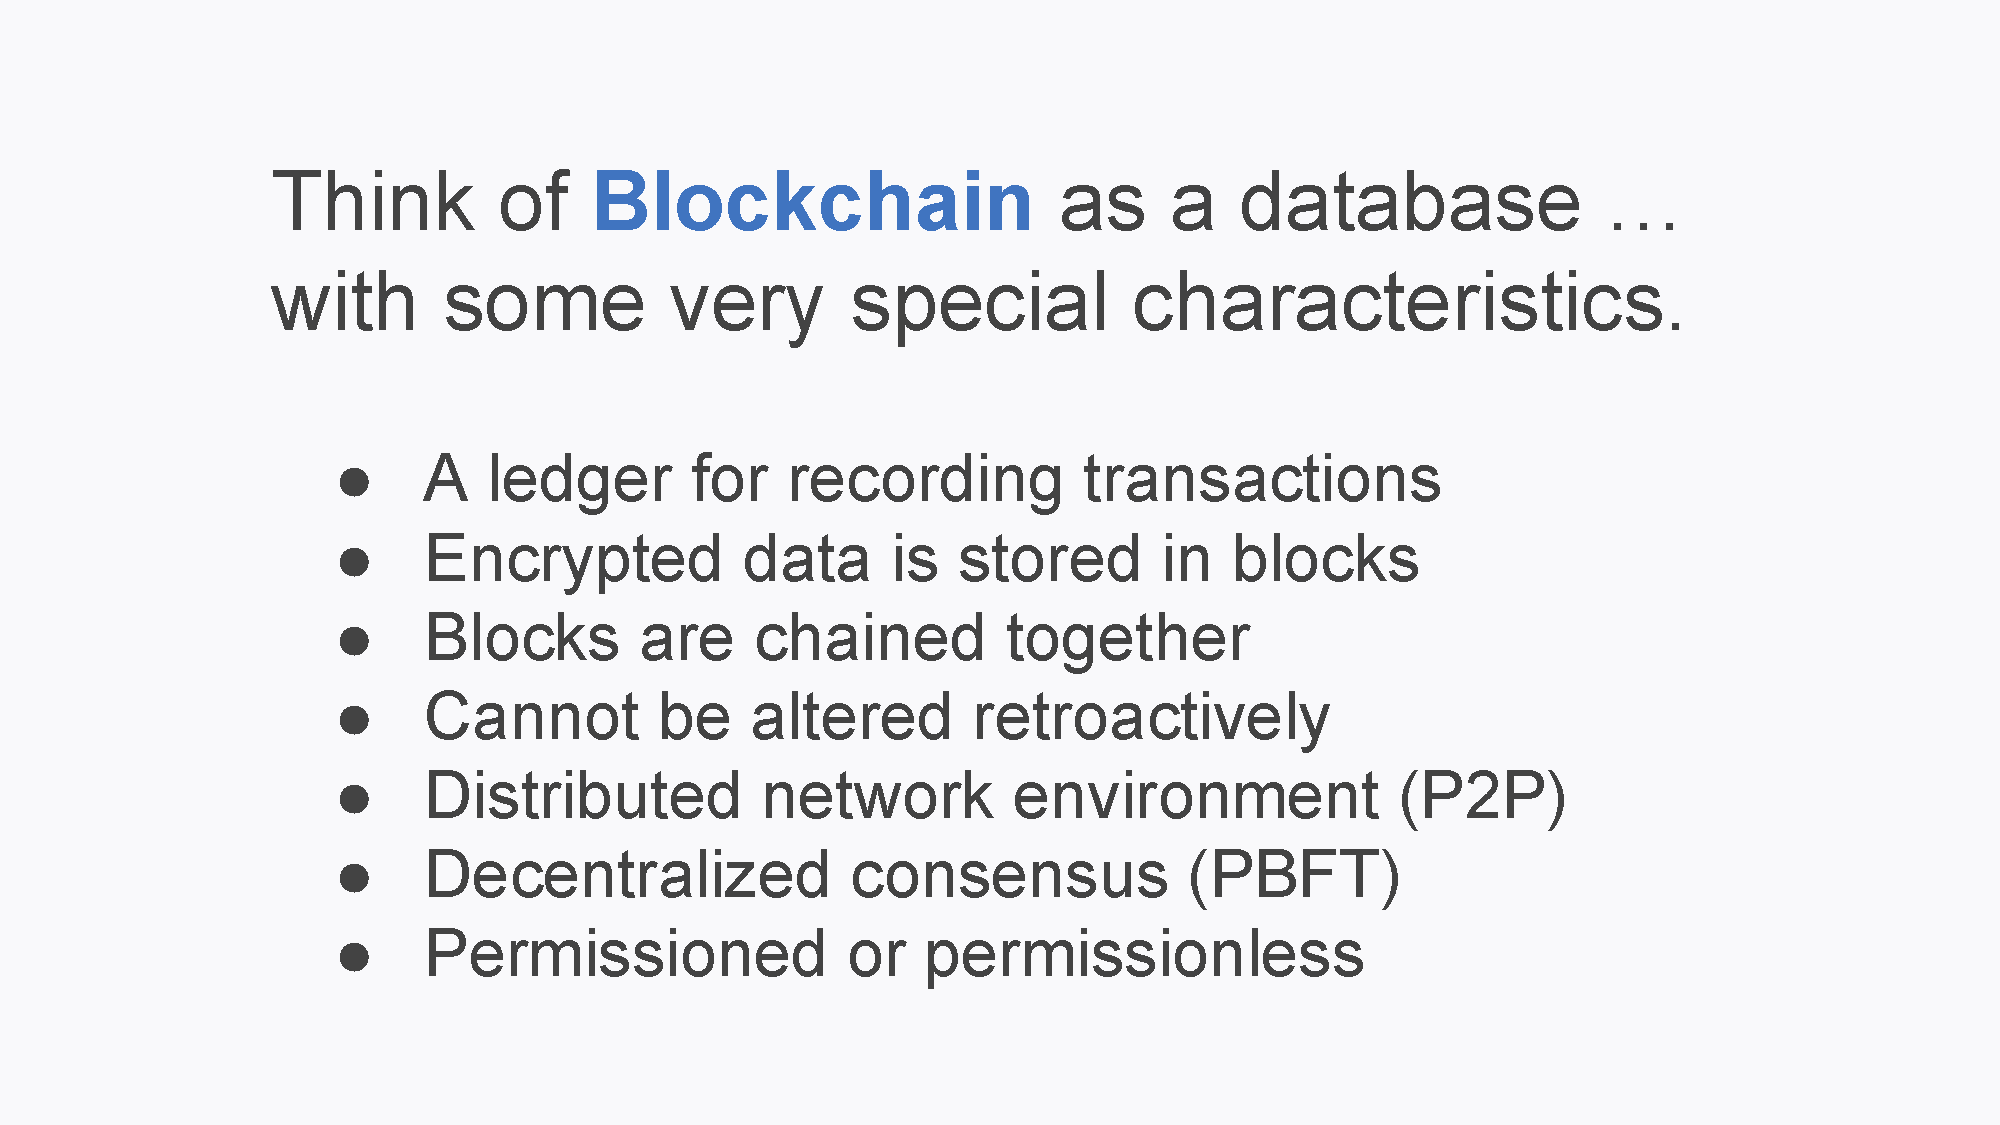 The special characteristics of blockchain.